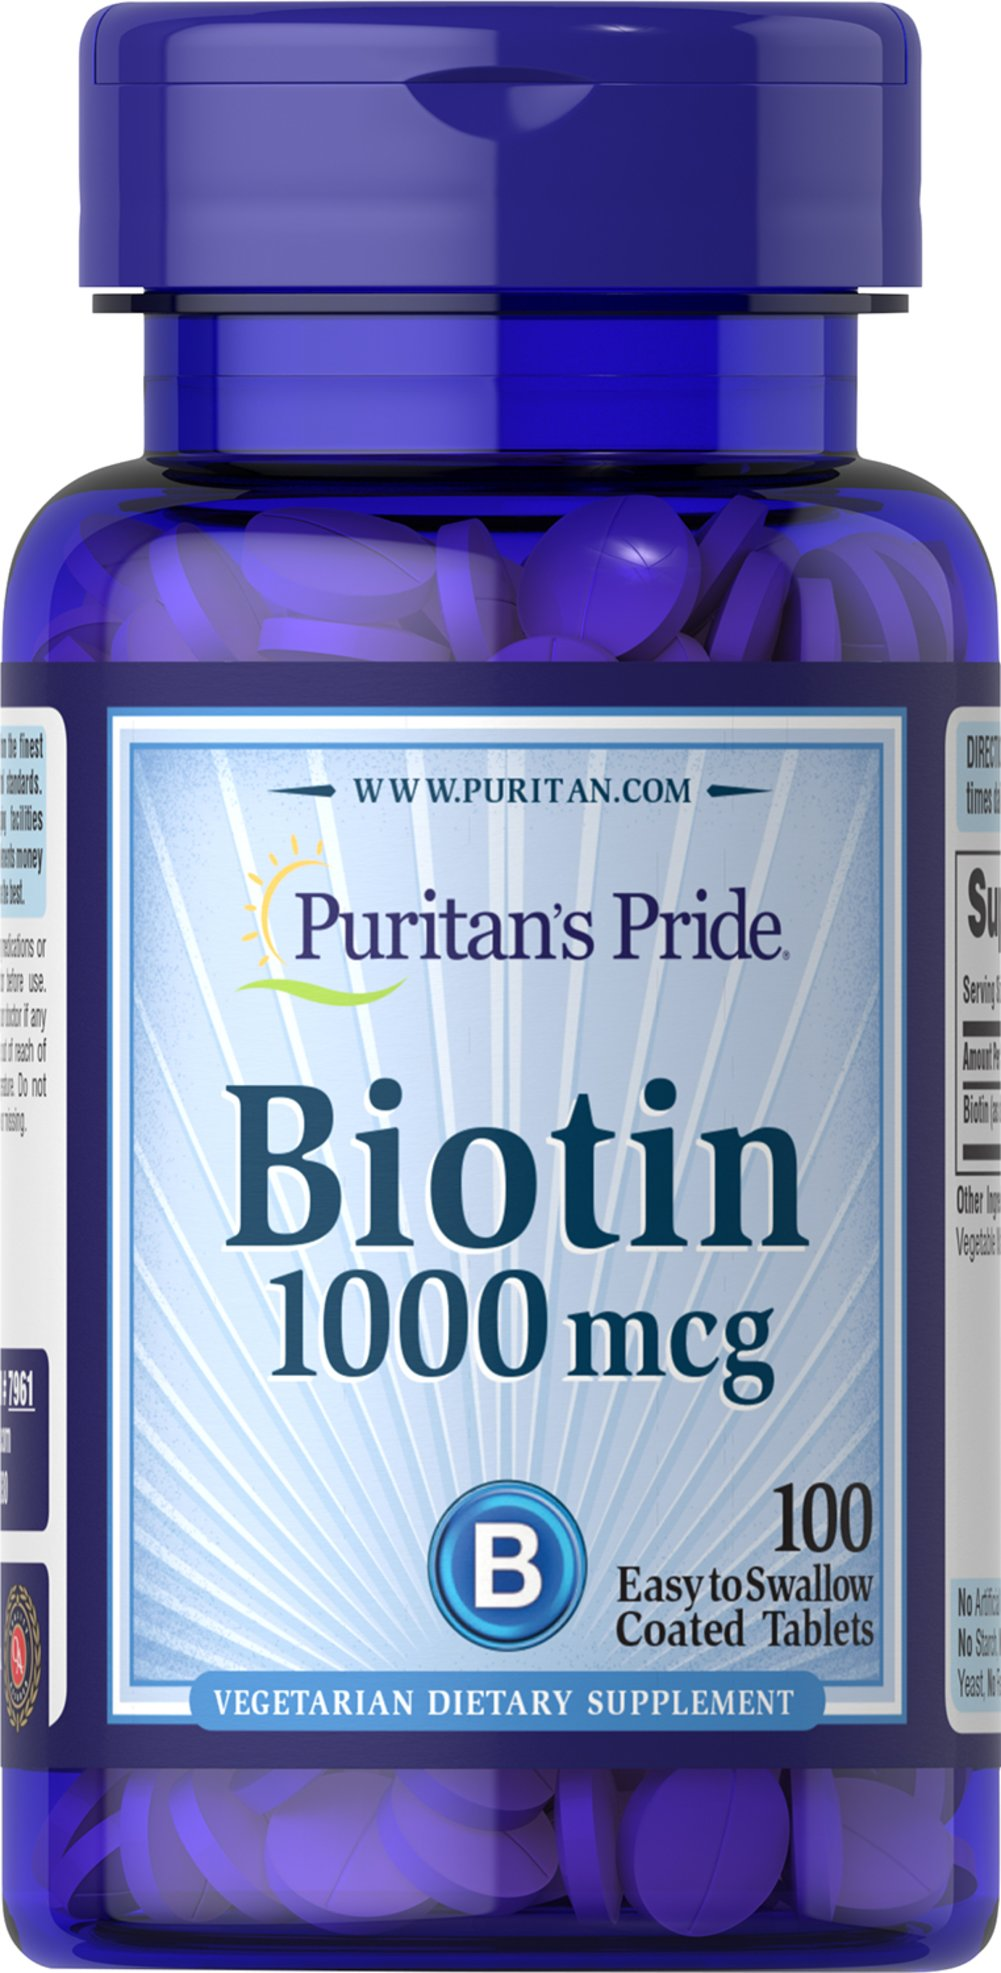 Biotin 1000 mcg <p>Supports Carbohydrate, Protein and Fat Metabolism**</p><p>Found in foods such as oatmeal and soy, Biotin, a water soluble B vitamin, assists in energy metabolism in cells.** Biotin is essential for the intermediate metabolism of carbohydrates, proteins and fats.** In addition, Biotin helps to support healthy skin and hair.**</p> 100 Tablets 1000 mcg $7.49